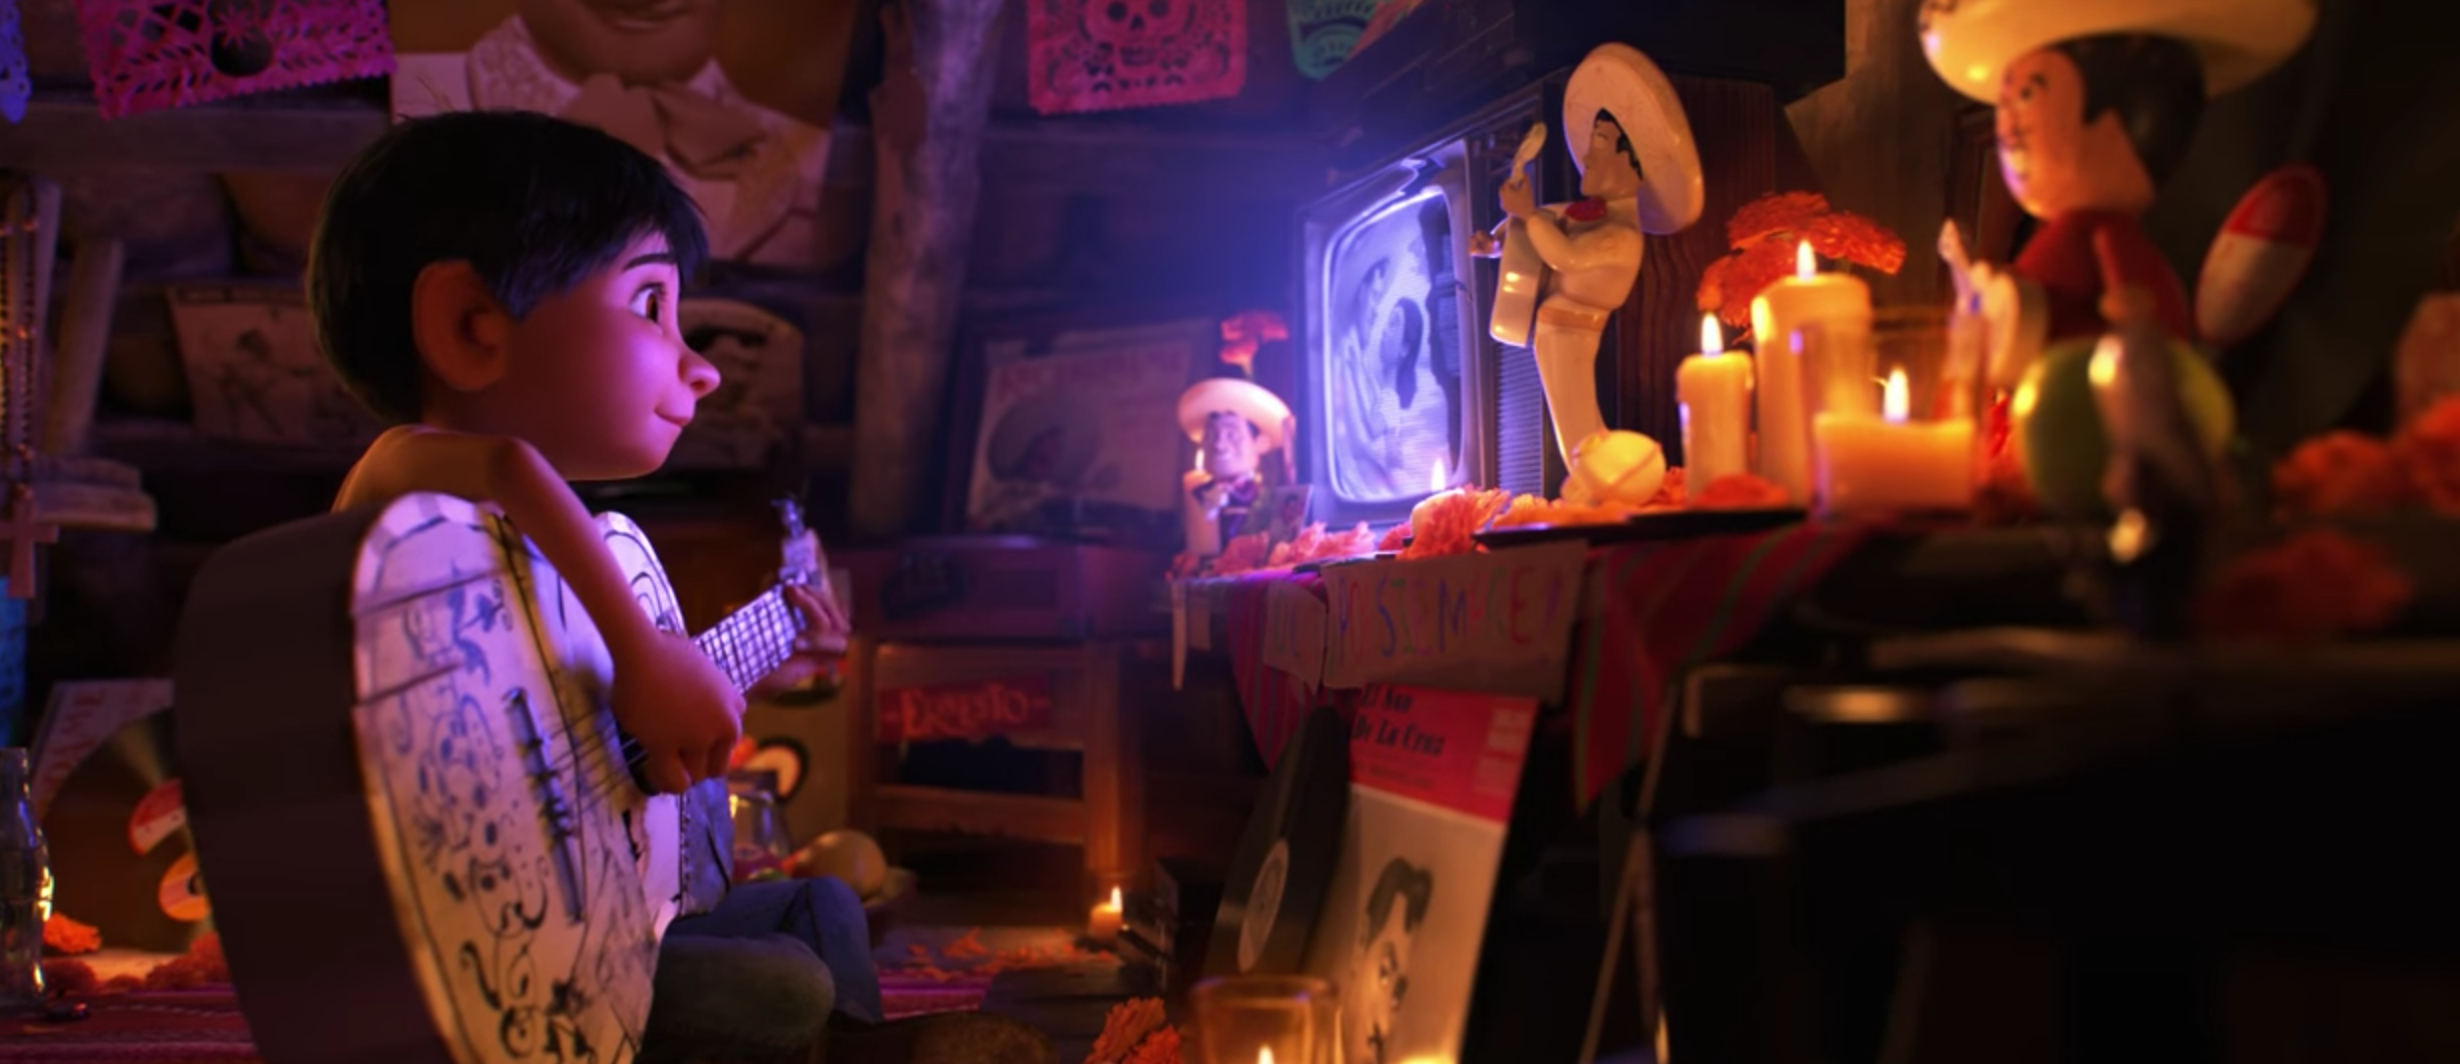 Disney•Pixar looks to add another hit with teaser for 'Coco'